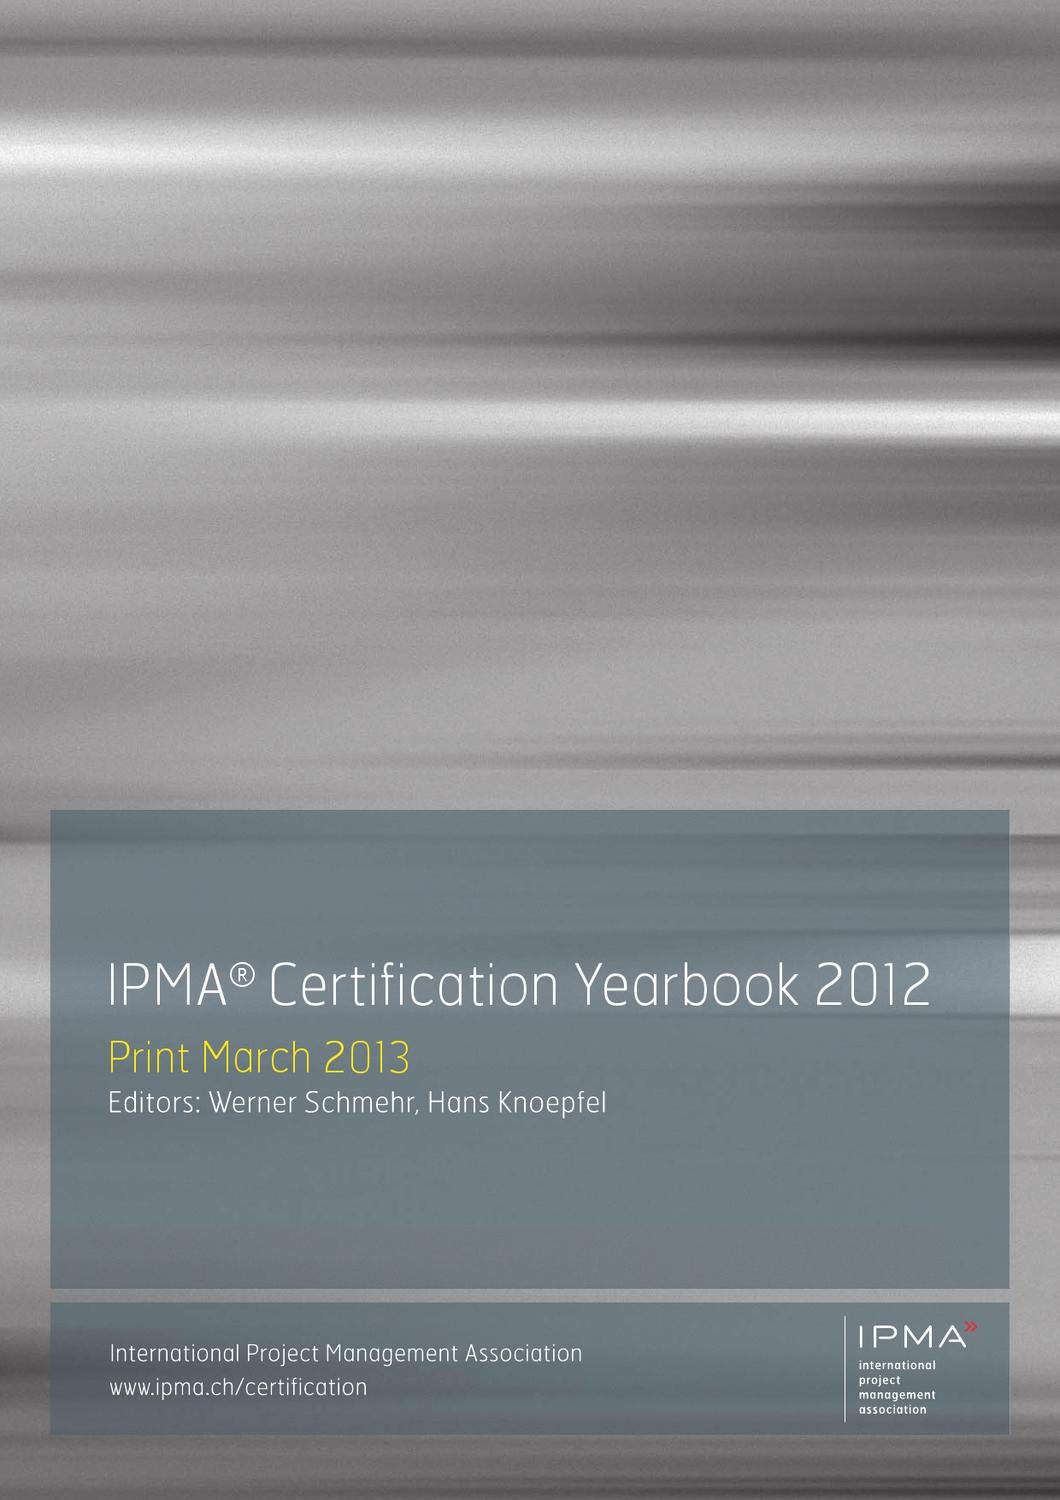 Ipma Certification Yearbook 2012 By Aeipro Issuu